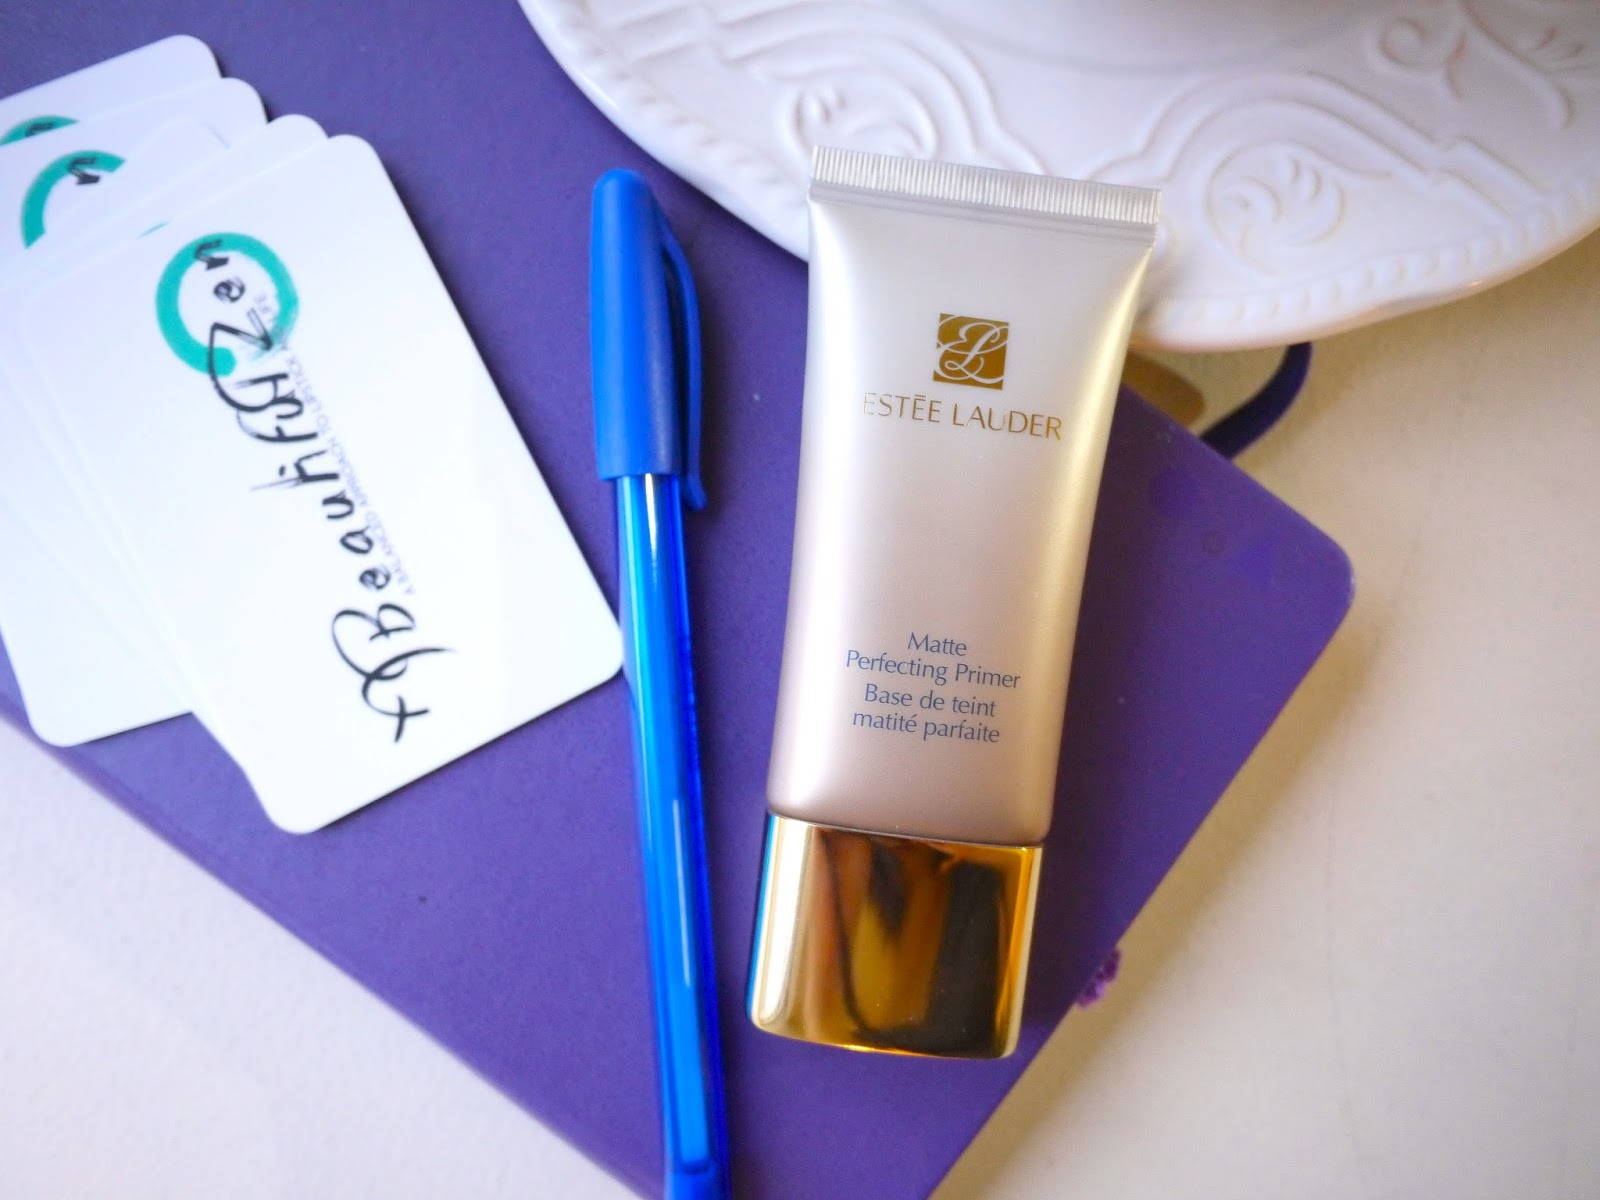 Estee Lauder Matte Perfecting Primer reviews